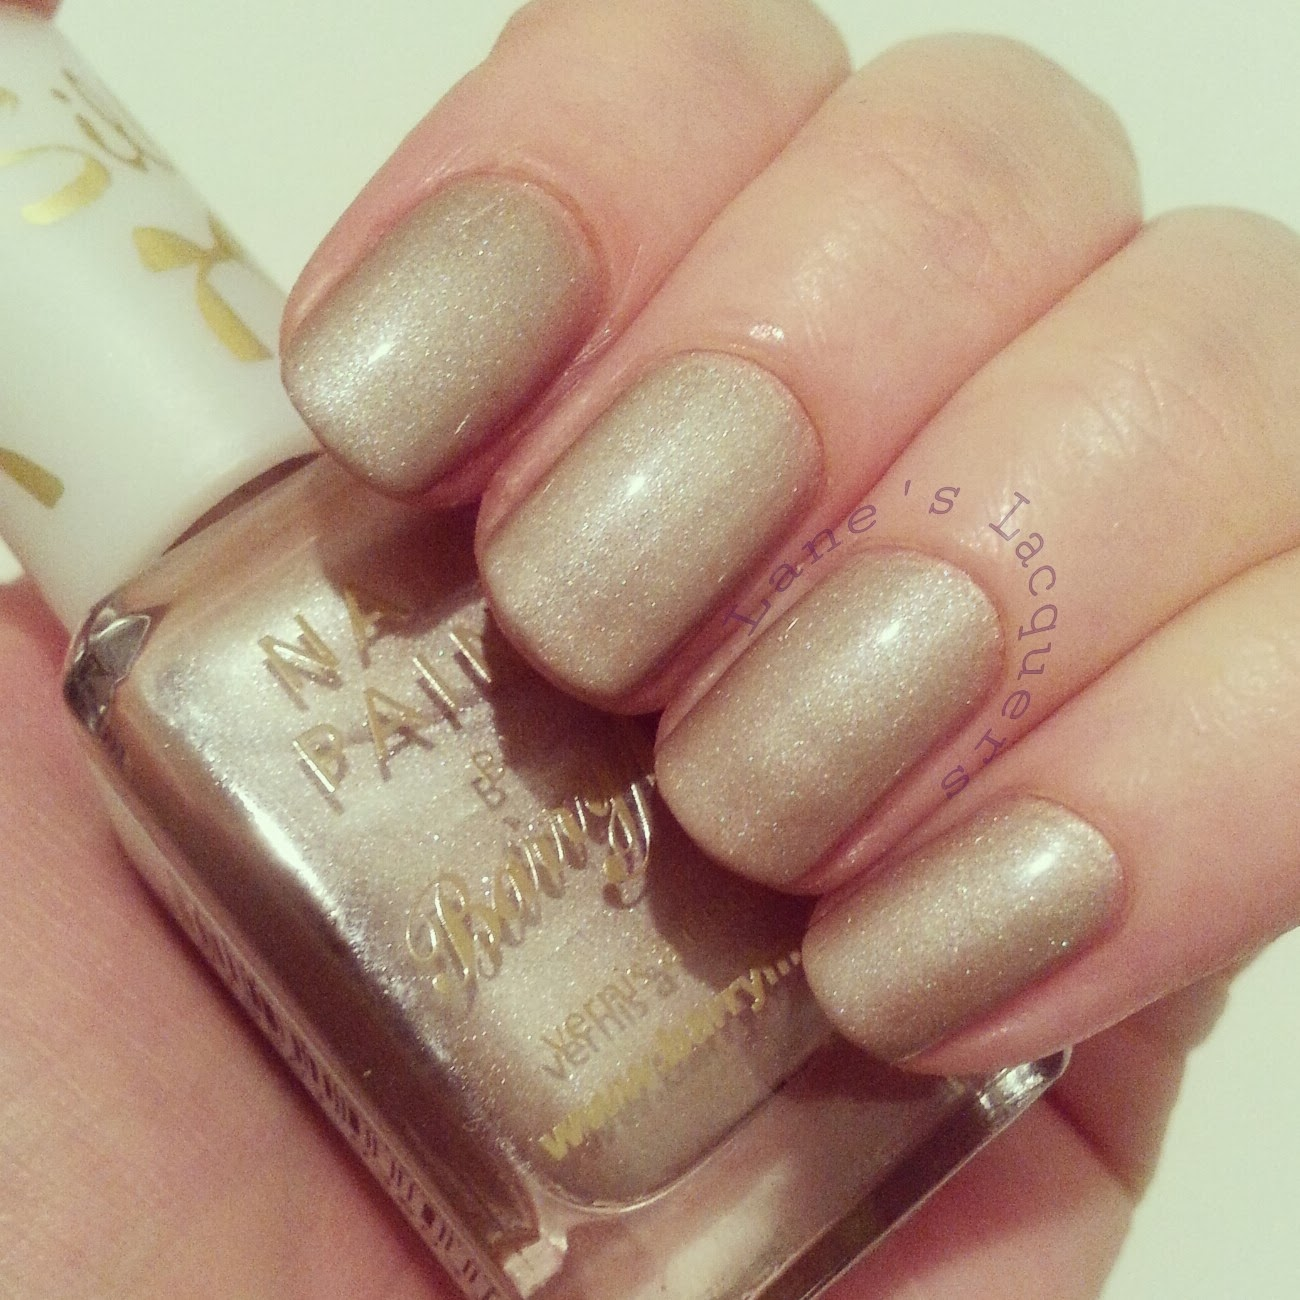 barry-m-silk-truffle-topcoat-swatch-nails